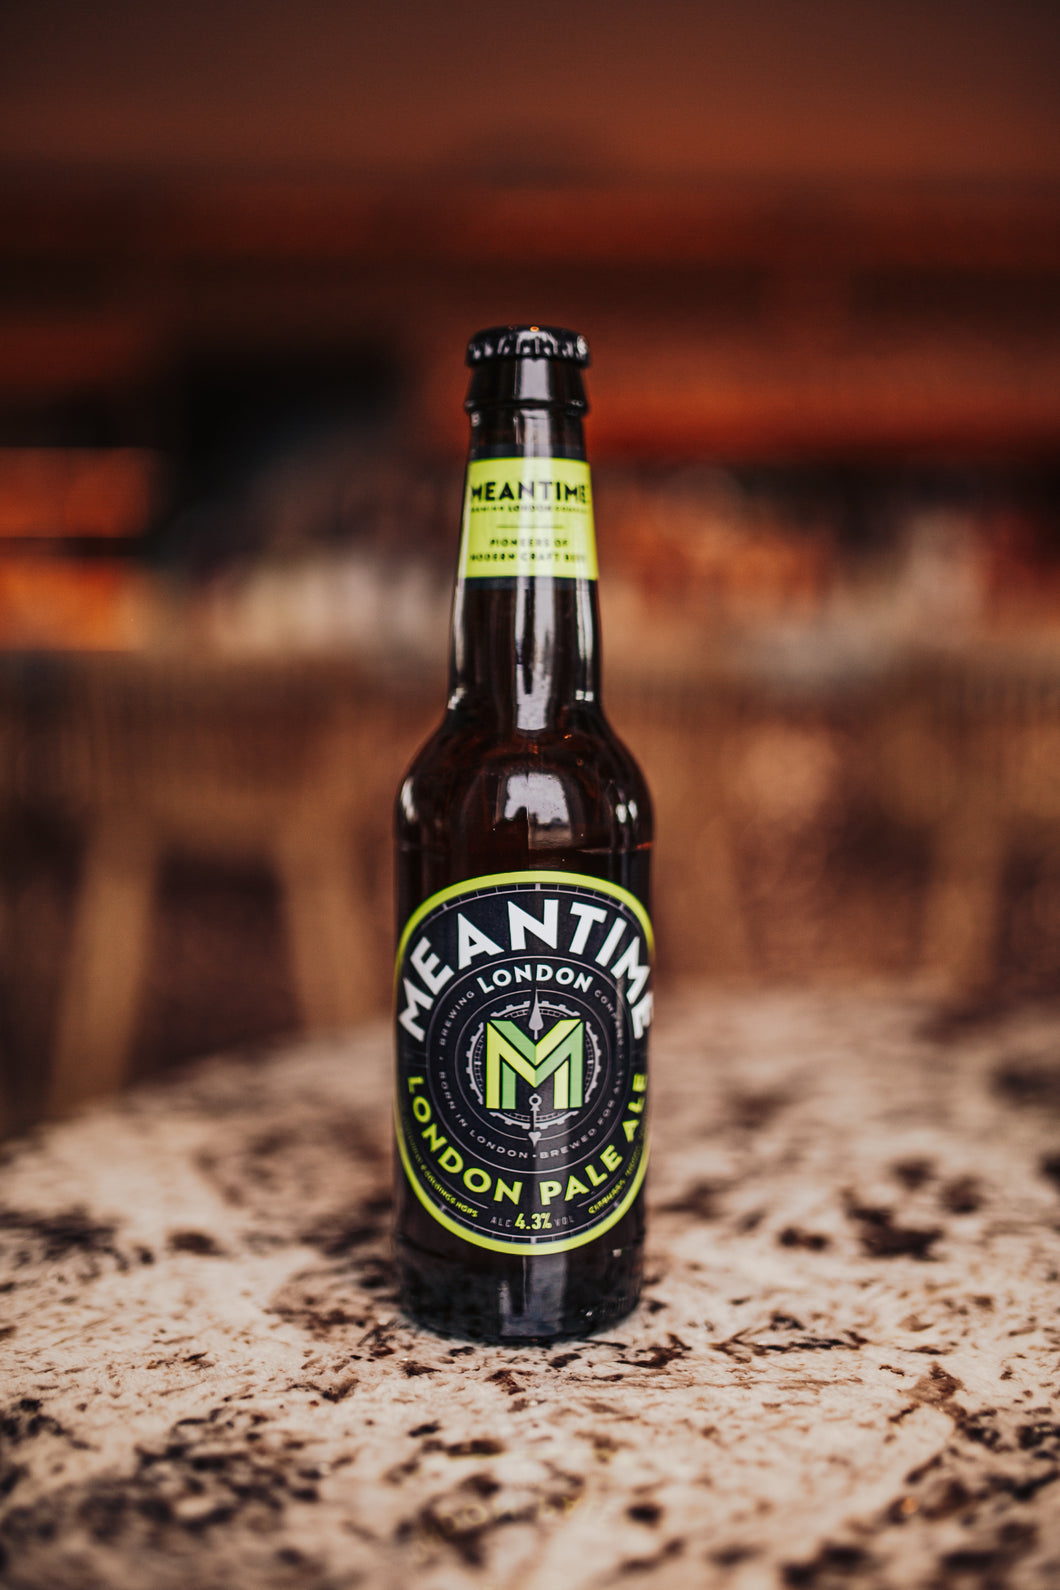 Meantime London Pale Ale (330ml)